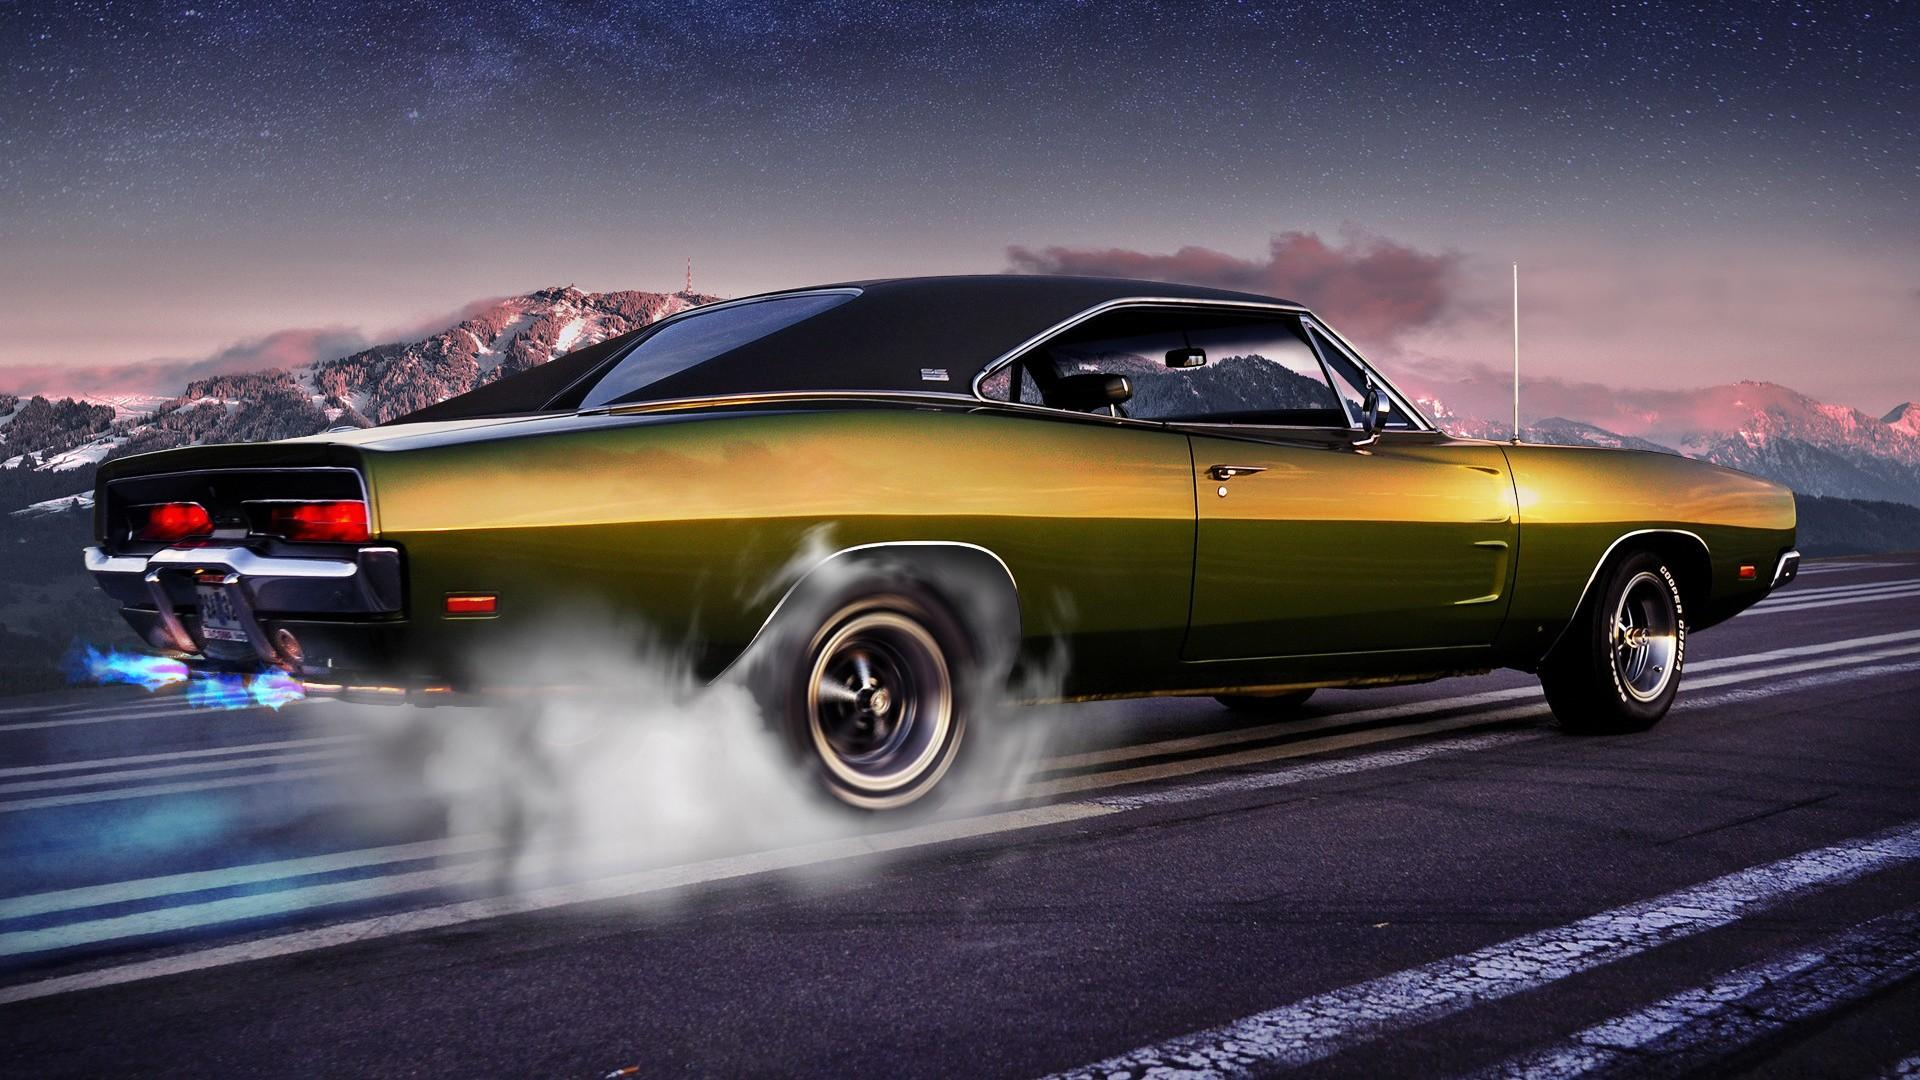 Classic-Muscle-Car-Wallpaper-iBackgroundWallpaper